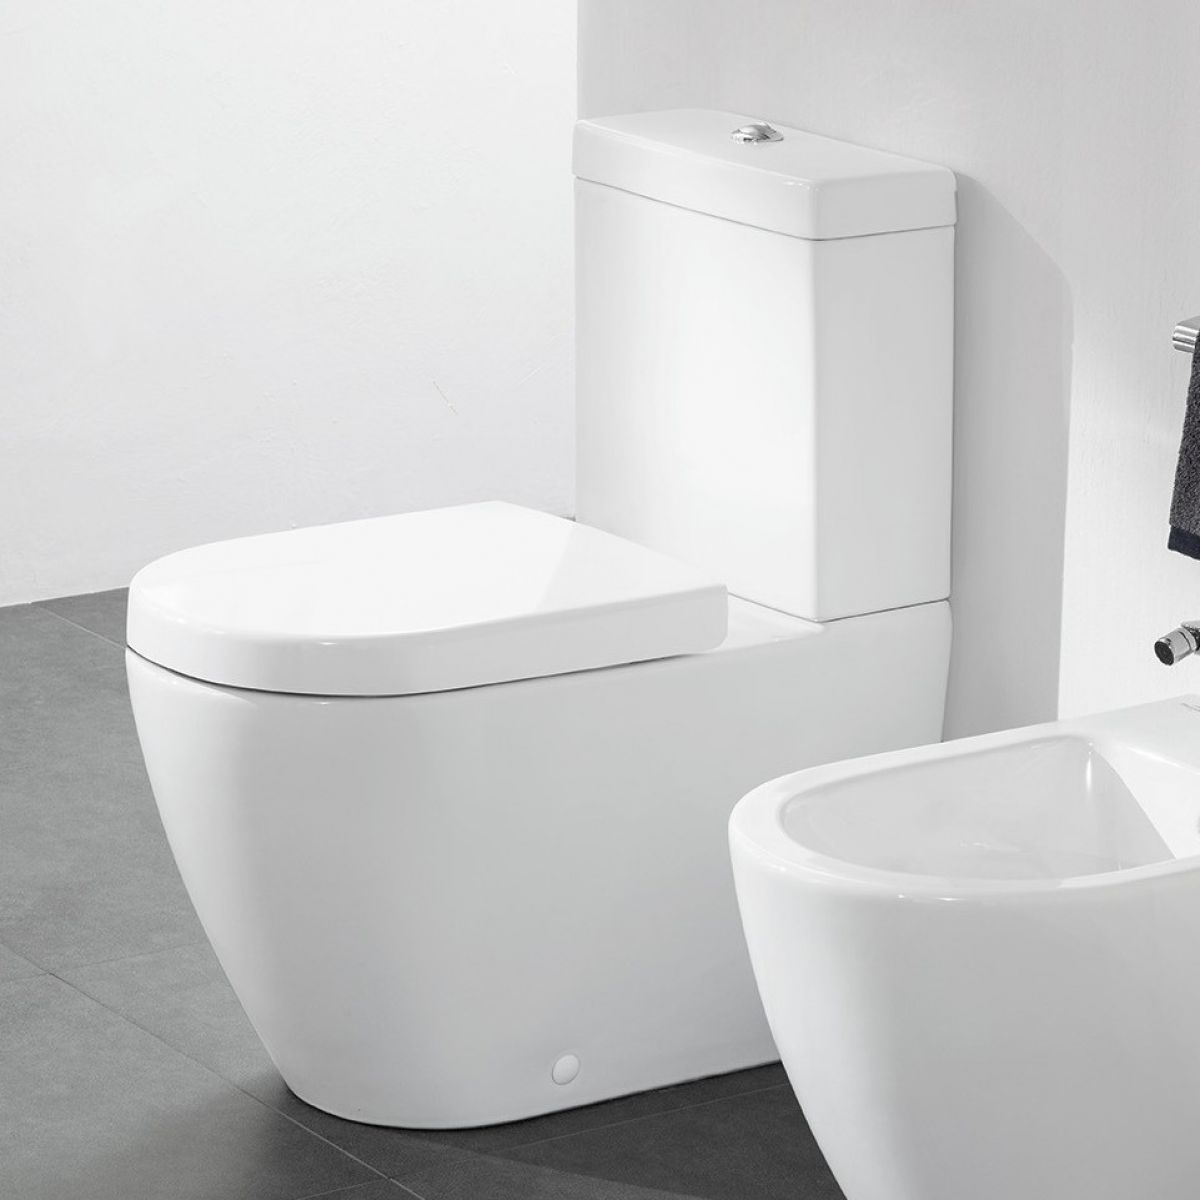 villeroy boch subway 2 0 rimless close coupled toilet bathrooms direct yorkshire. Black Bedroom Furniture Sets. Home Design Ideas